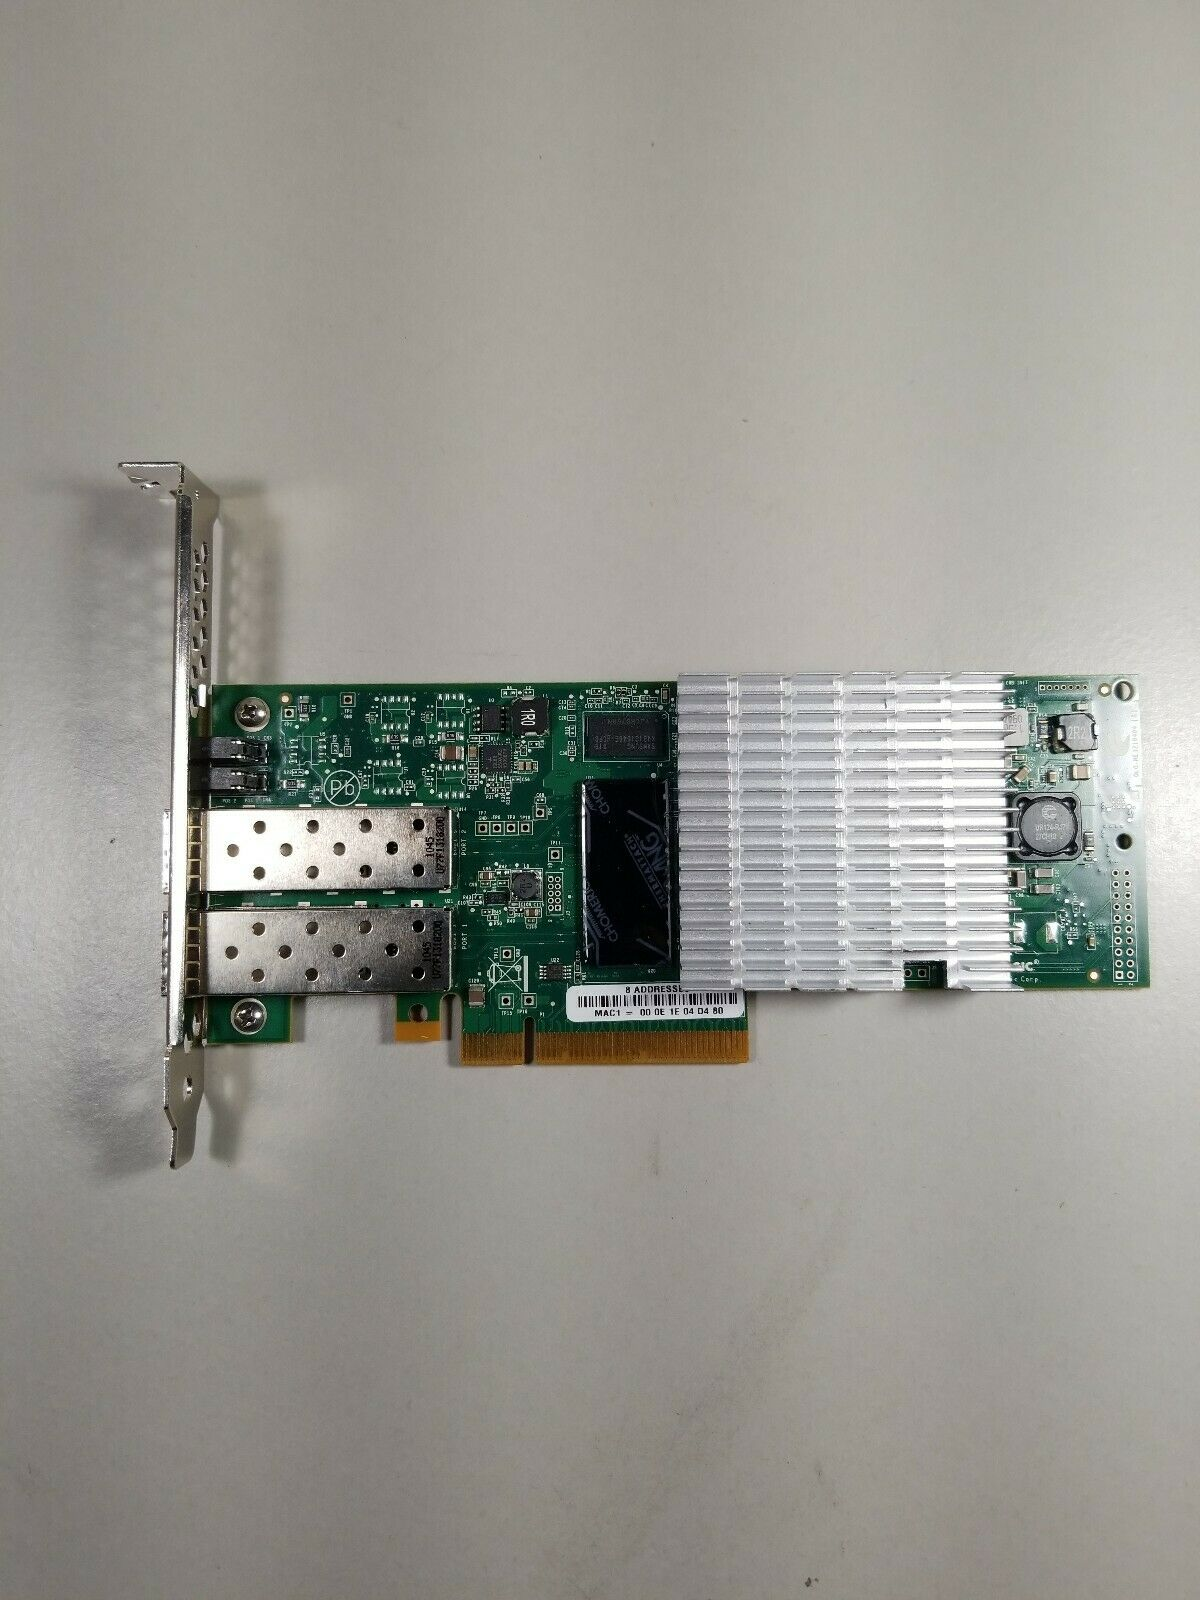 QLogic QLE8242-SR 10Gbps Fibre Channel Network Adapter Card, #C3